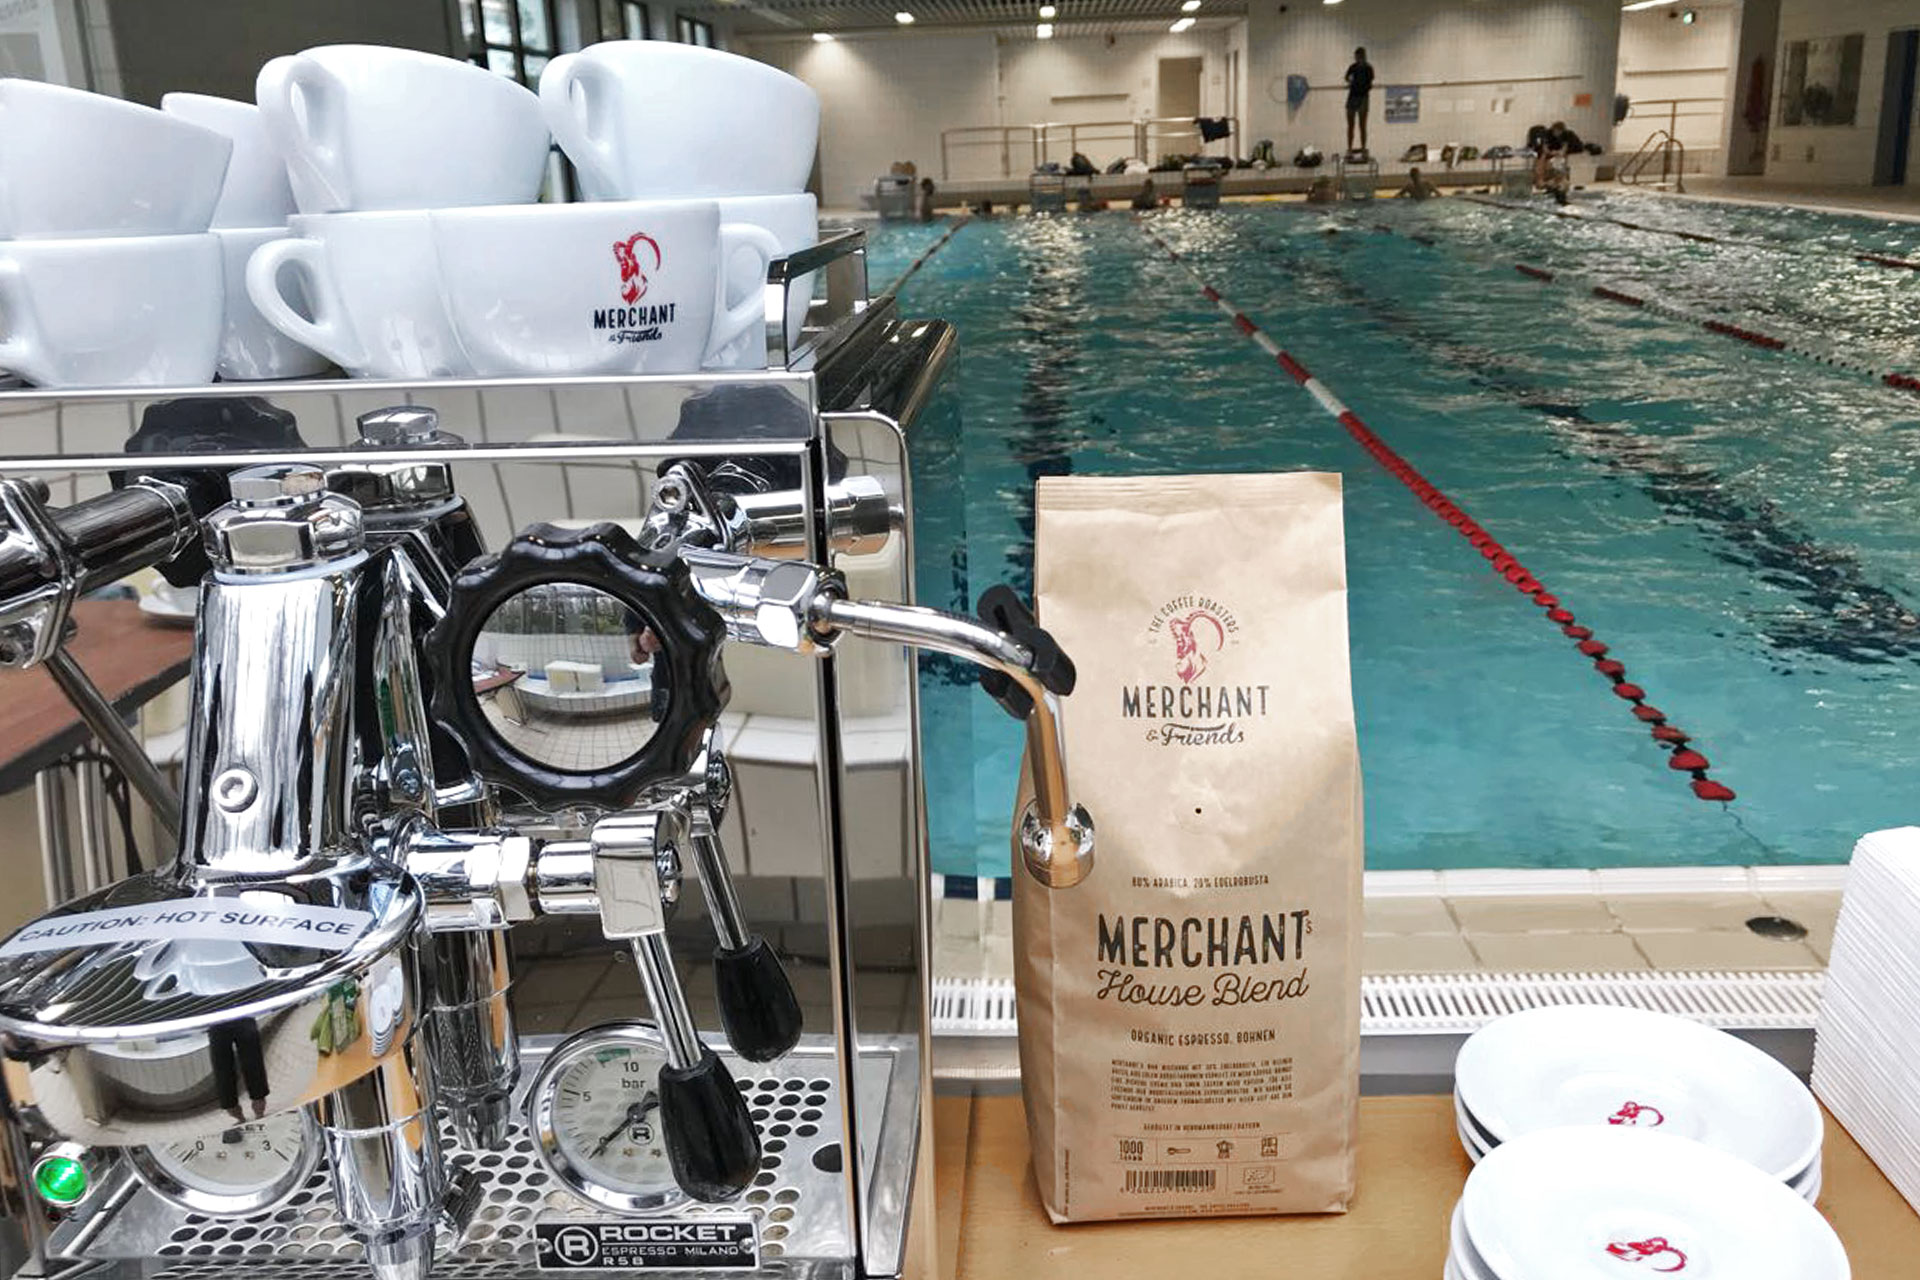 SUGAR & PAIN SWIMINAR / Leistungsstarke Kombination: MERCHANT & FRIENDS Coffee plus ROCKET Espresso für die richtige Dosis Coffein in Bio-Qualität © stefandrexl.com